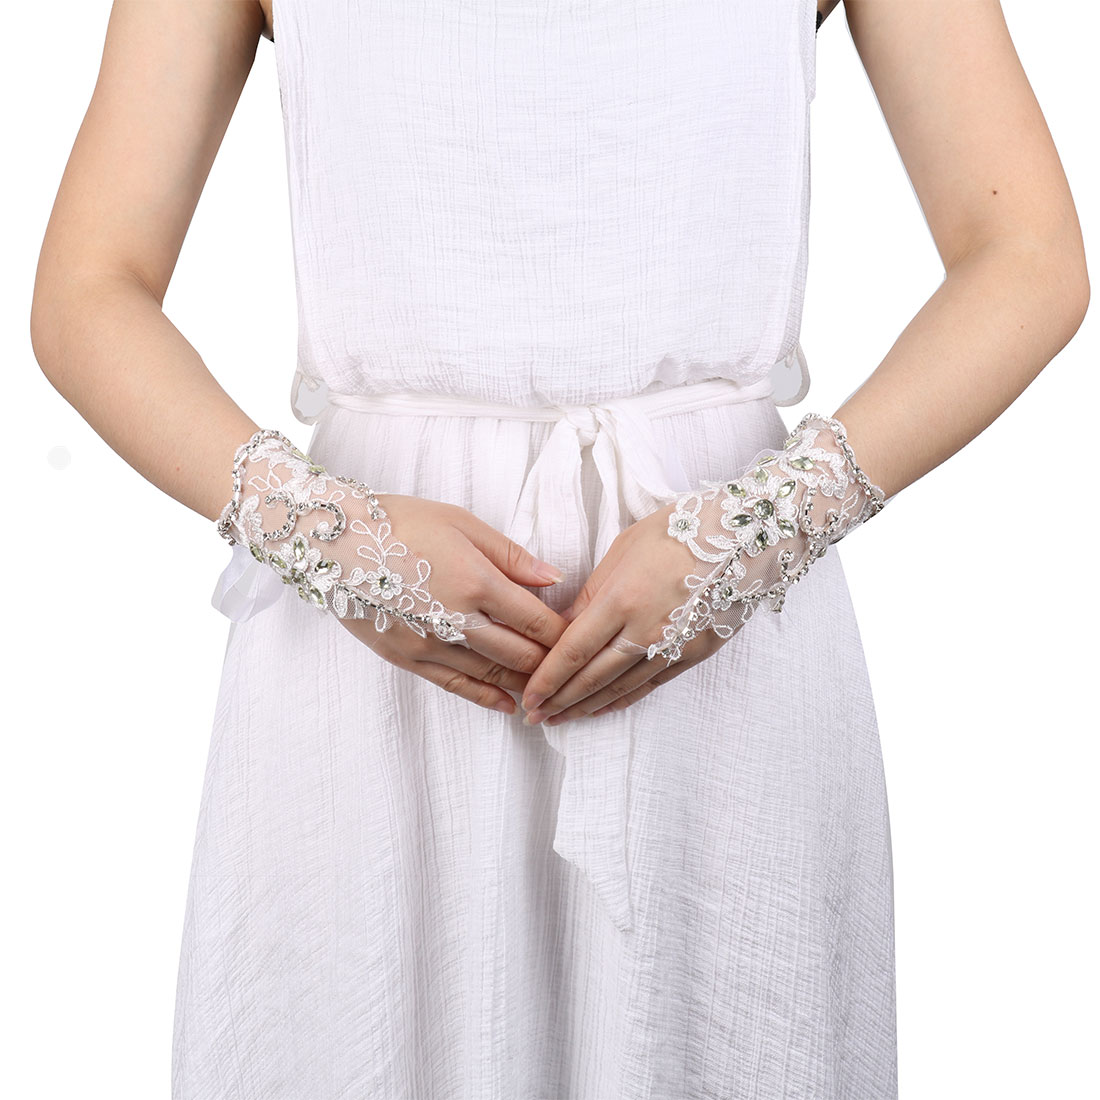 Wedding DIY Handcraft Ornament Bridesmaid Hand Lace Fingerless Glove White Pair